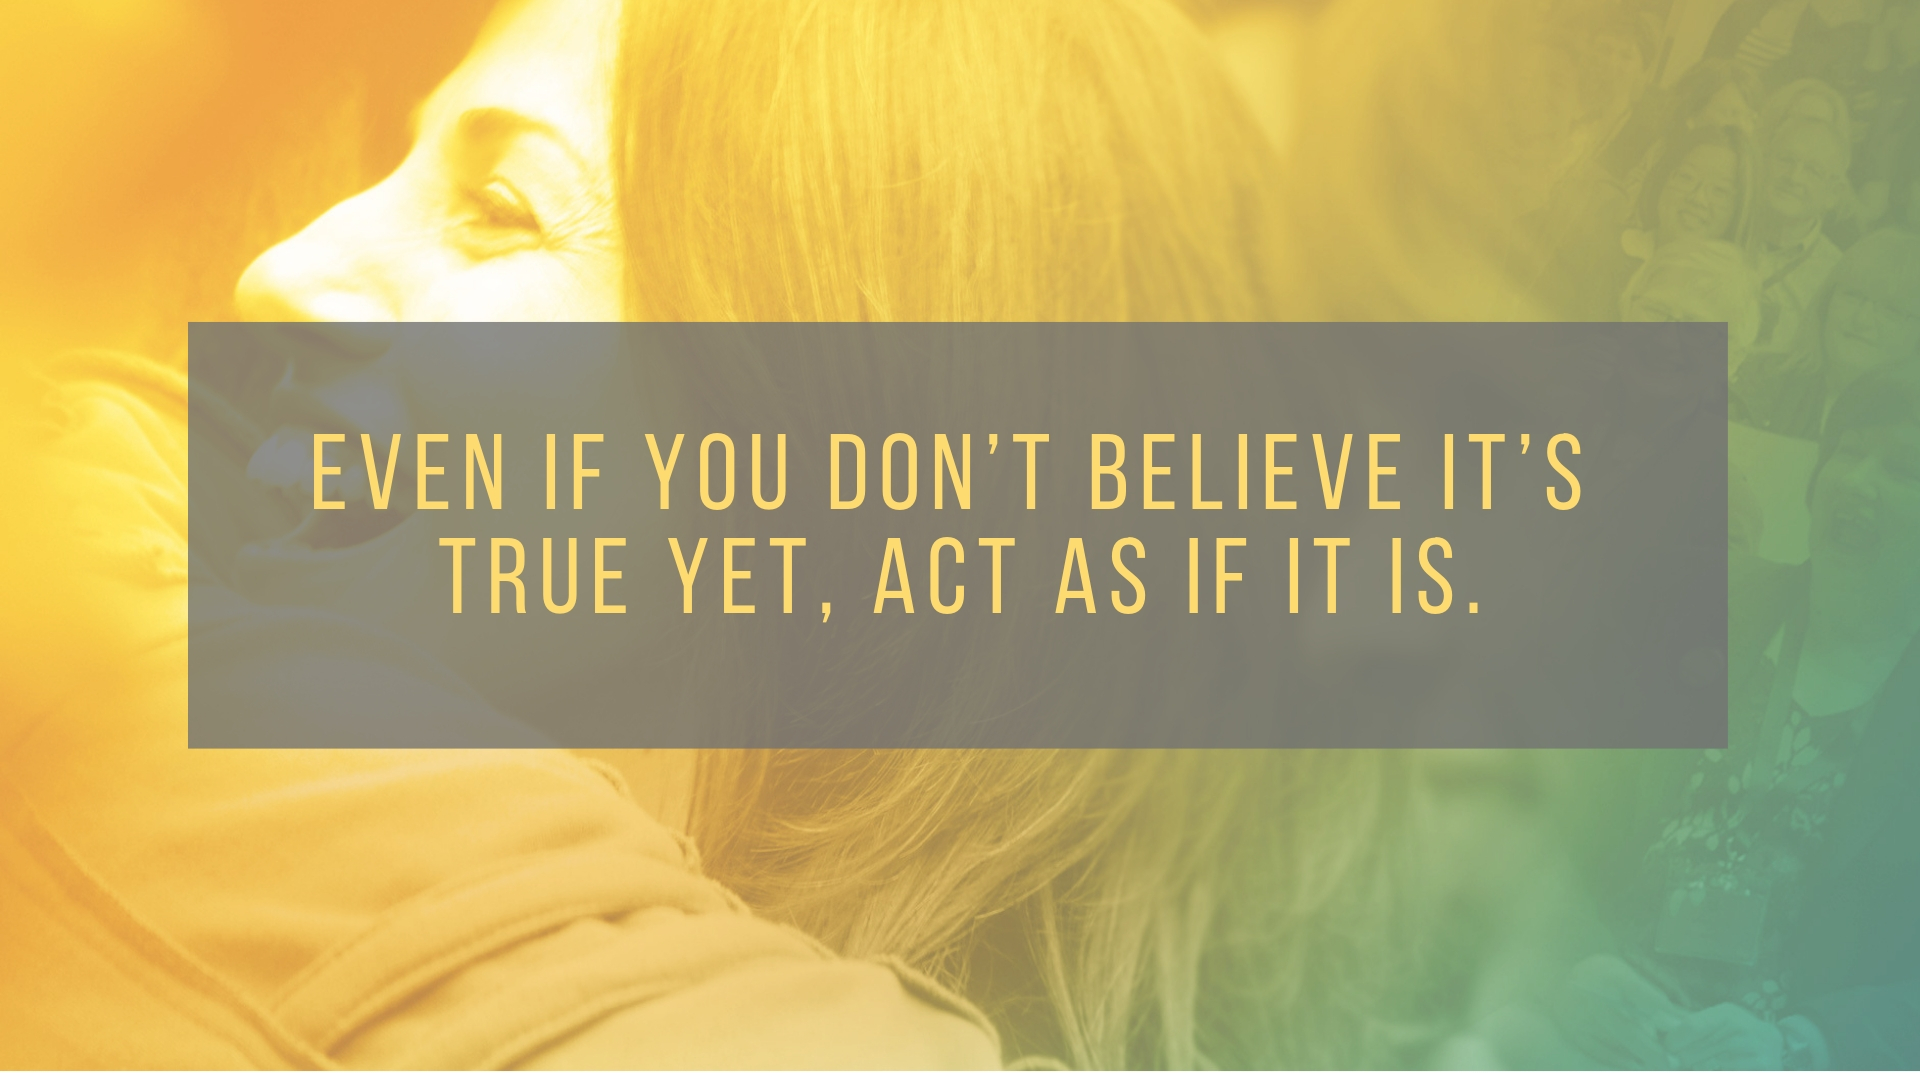 Even if you don't believe it's true yet, act as if it is.